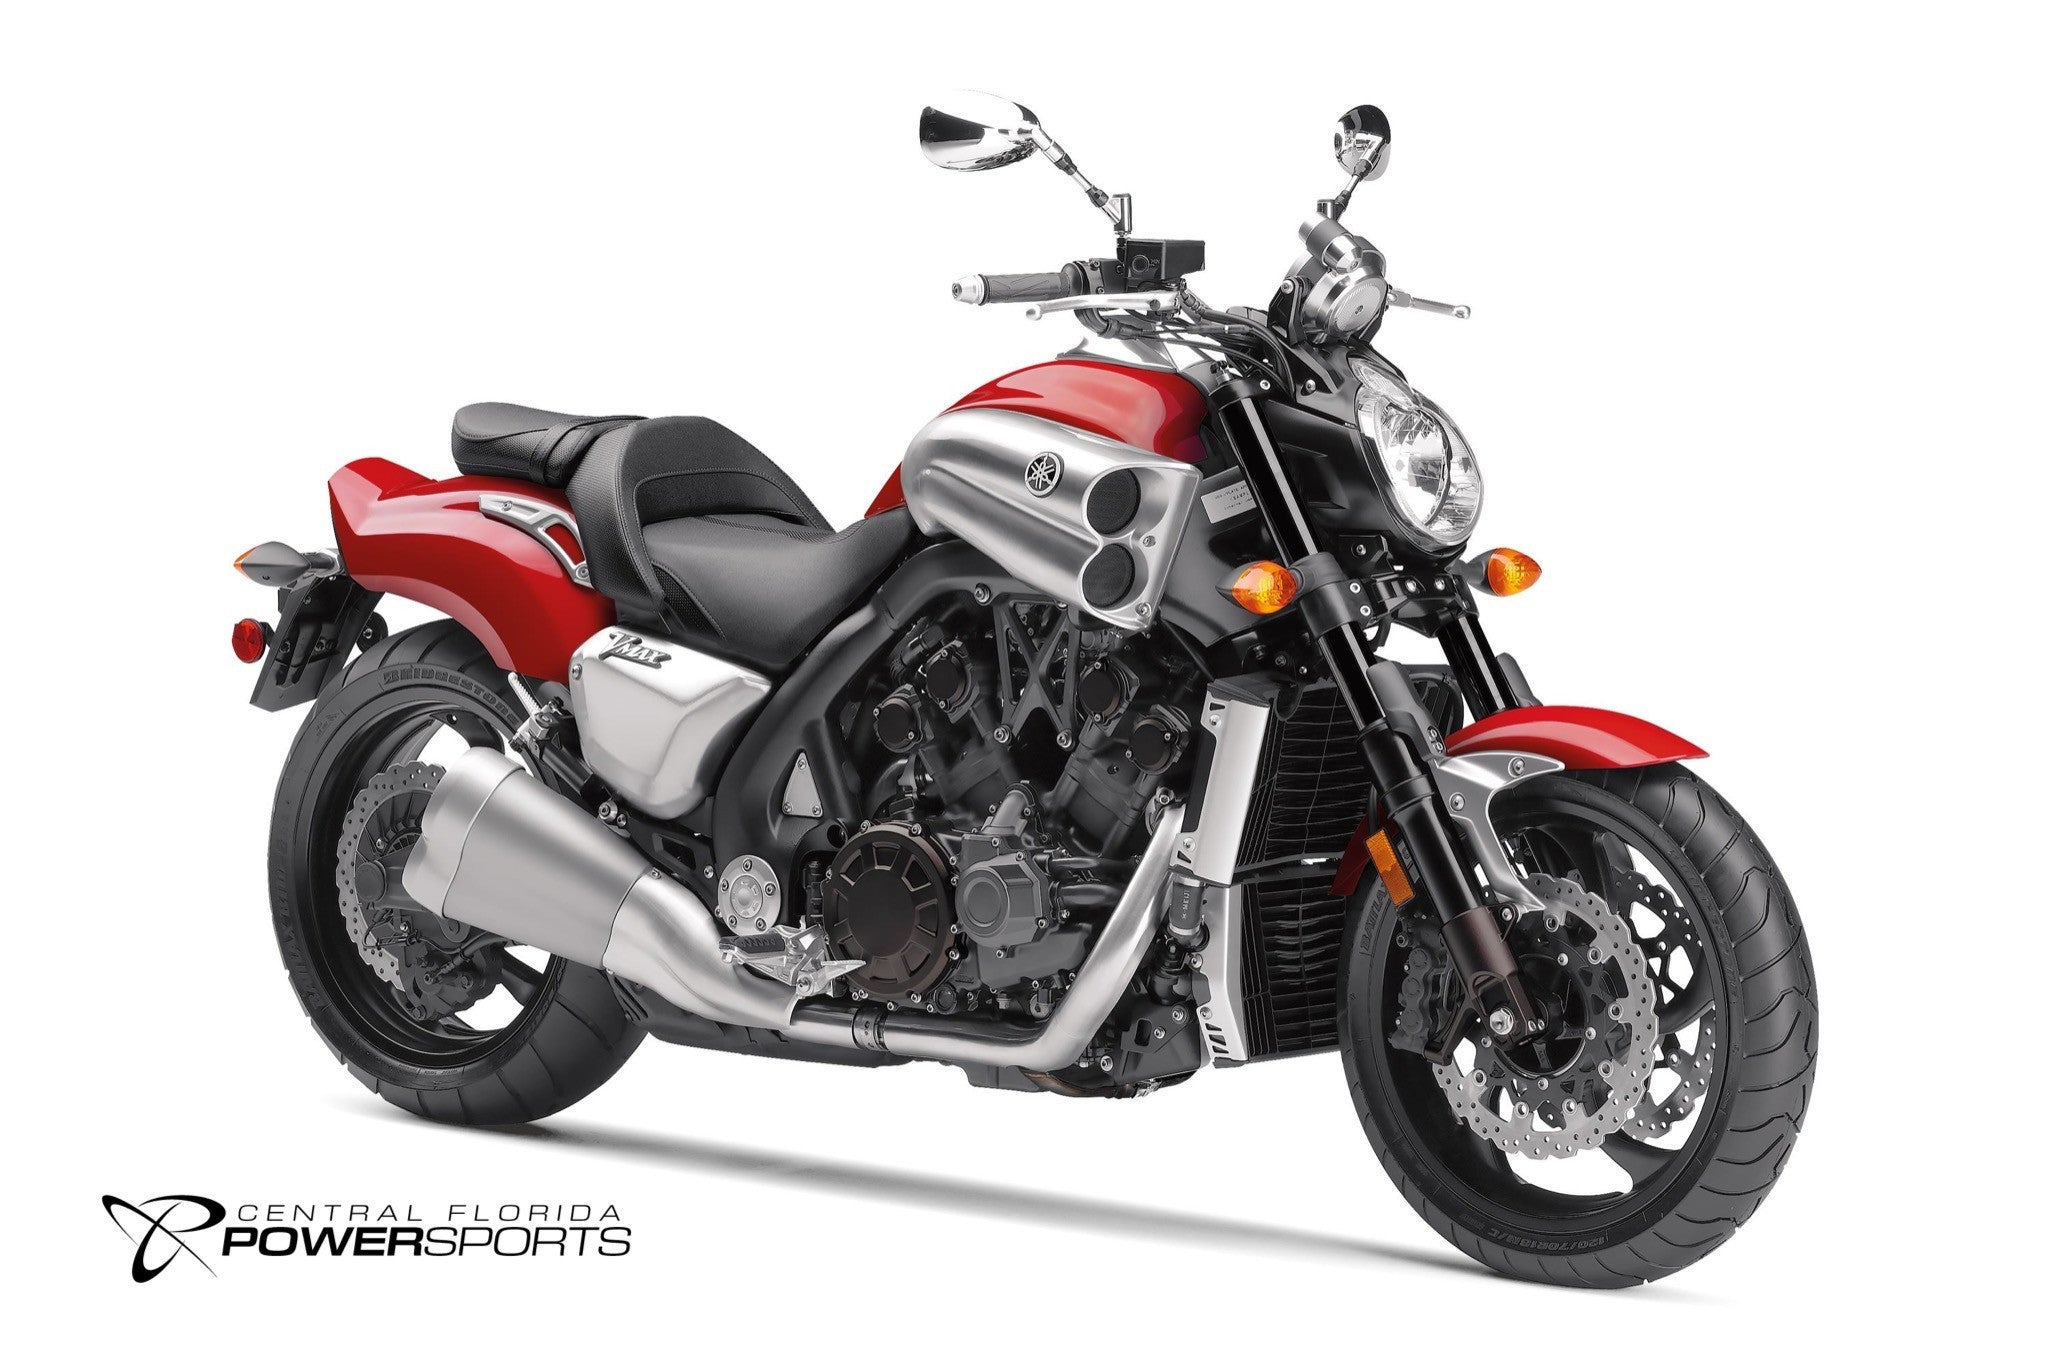 New 2017 yamaha vmax cruiser motorcycles for sale for Yamaha bike dealer locator